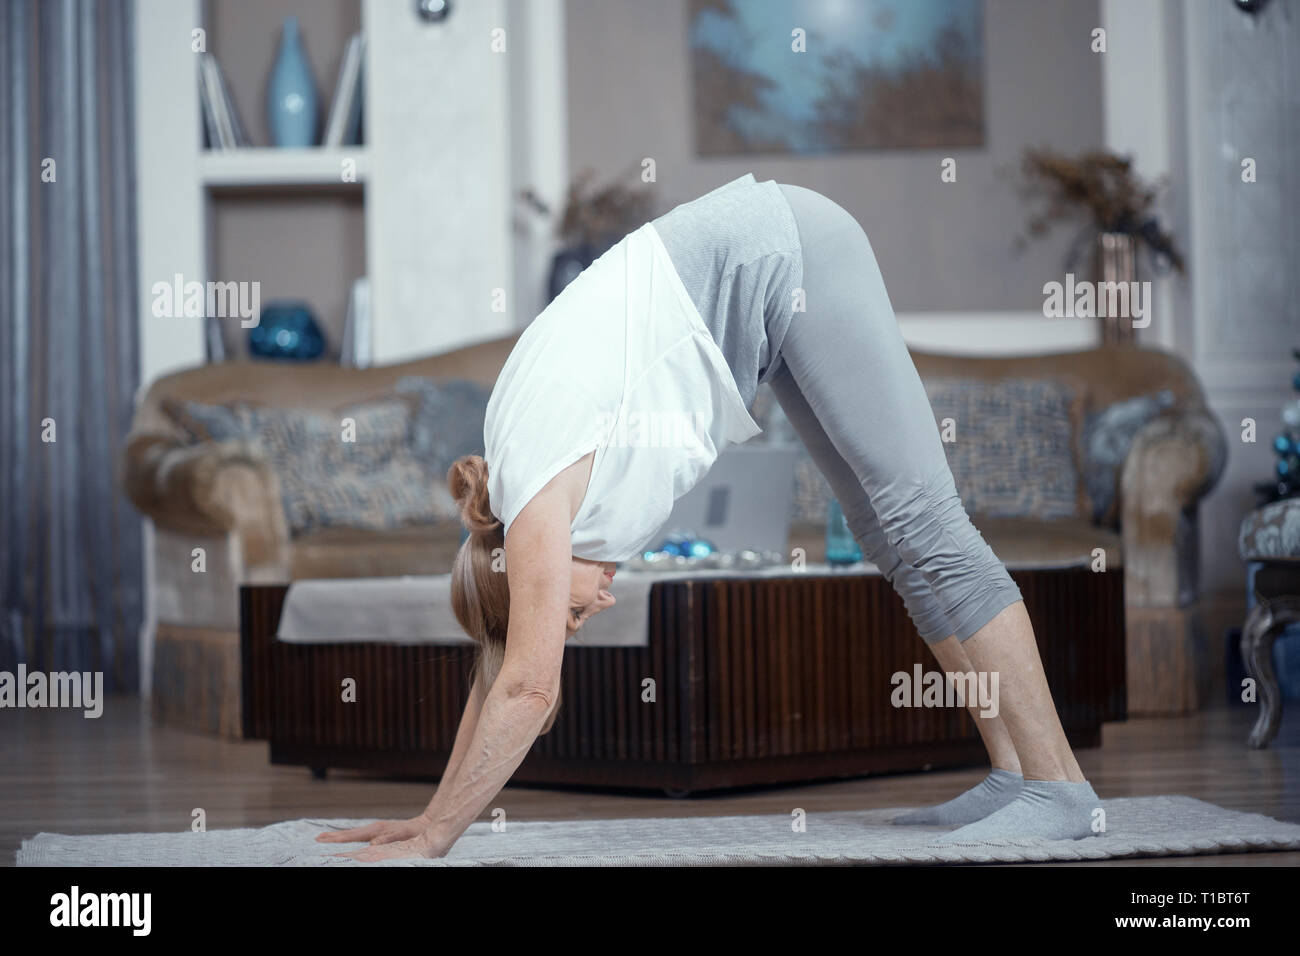 Adult Woman Over 50 Years Old Doing Yoga At Home In The Living Room Stock Photo Alamy